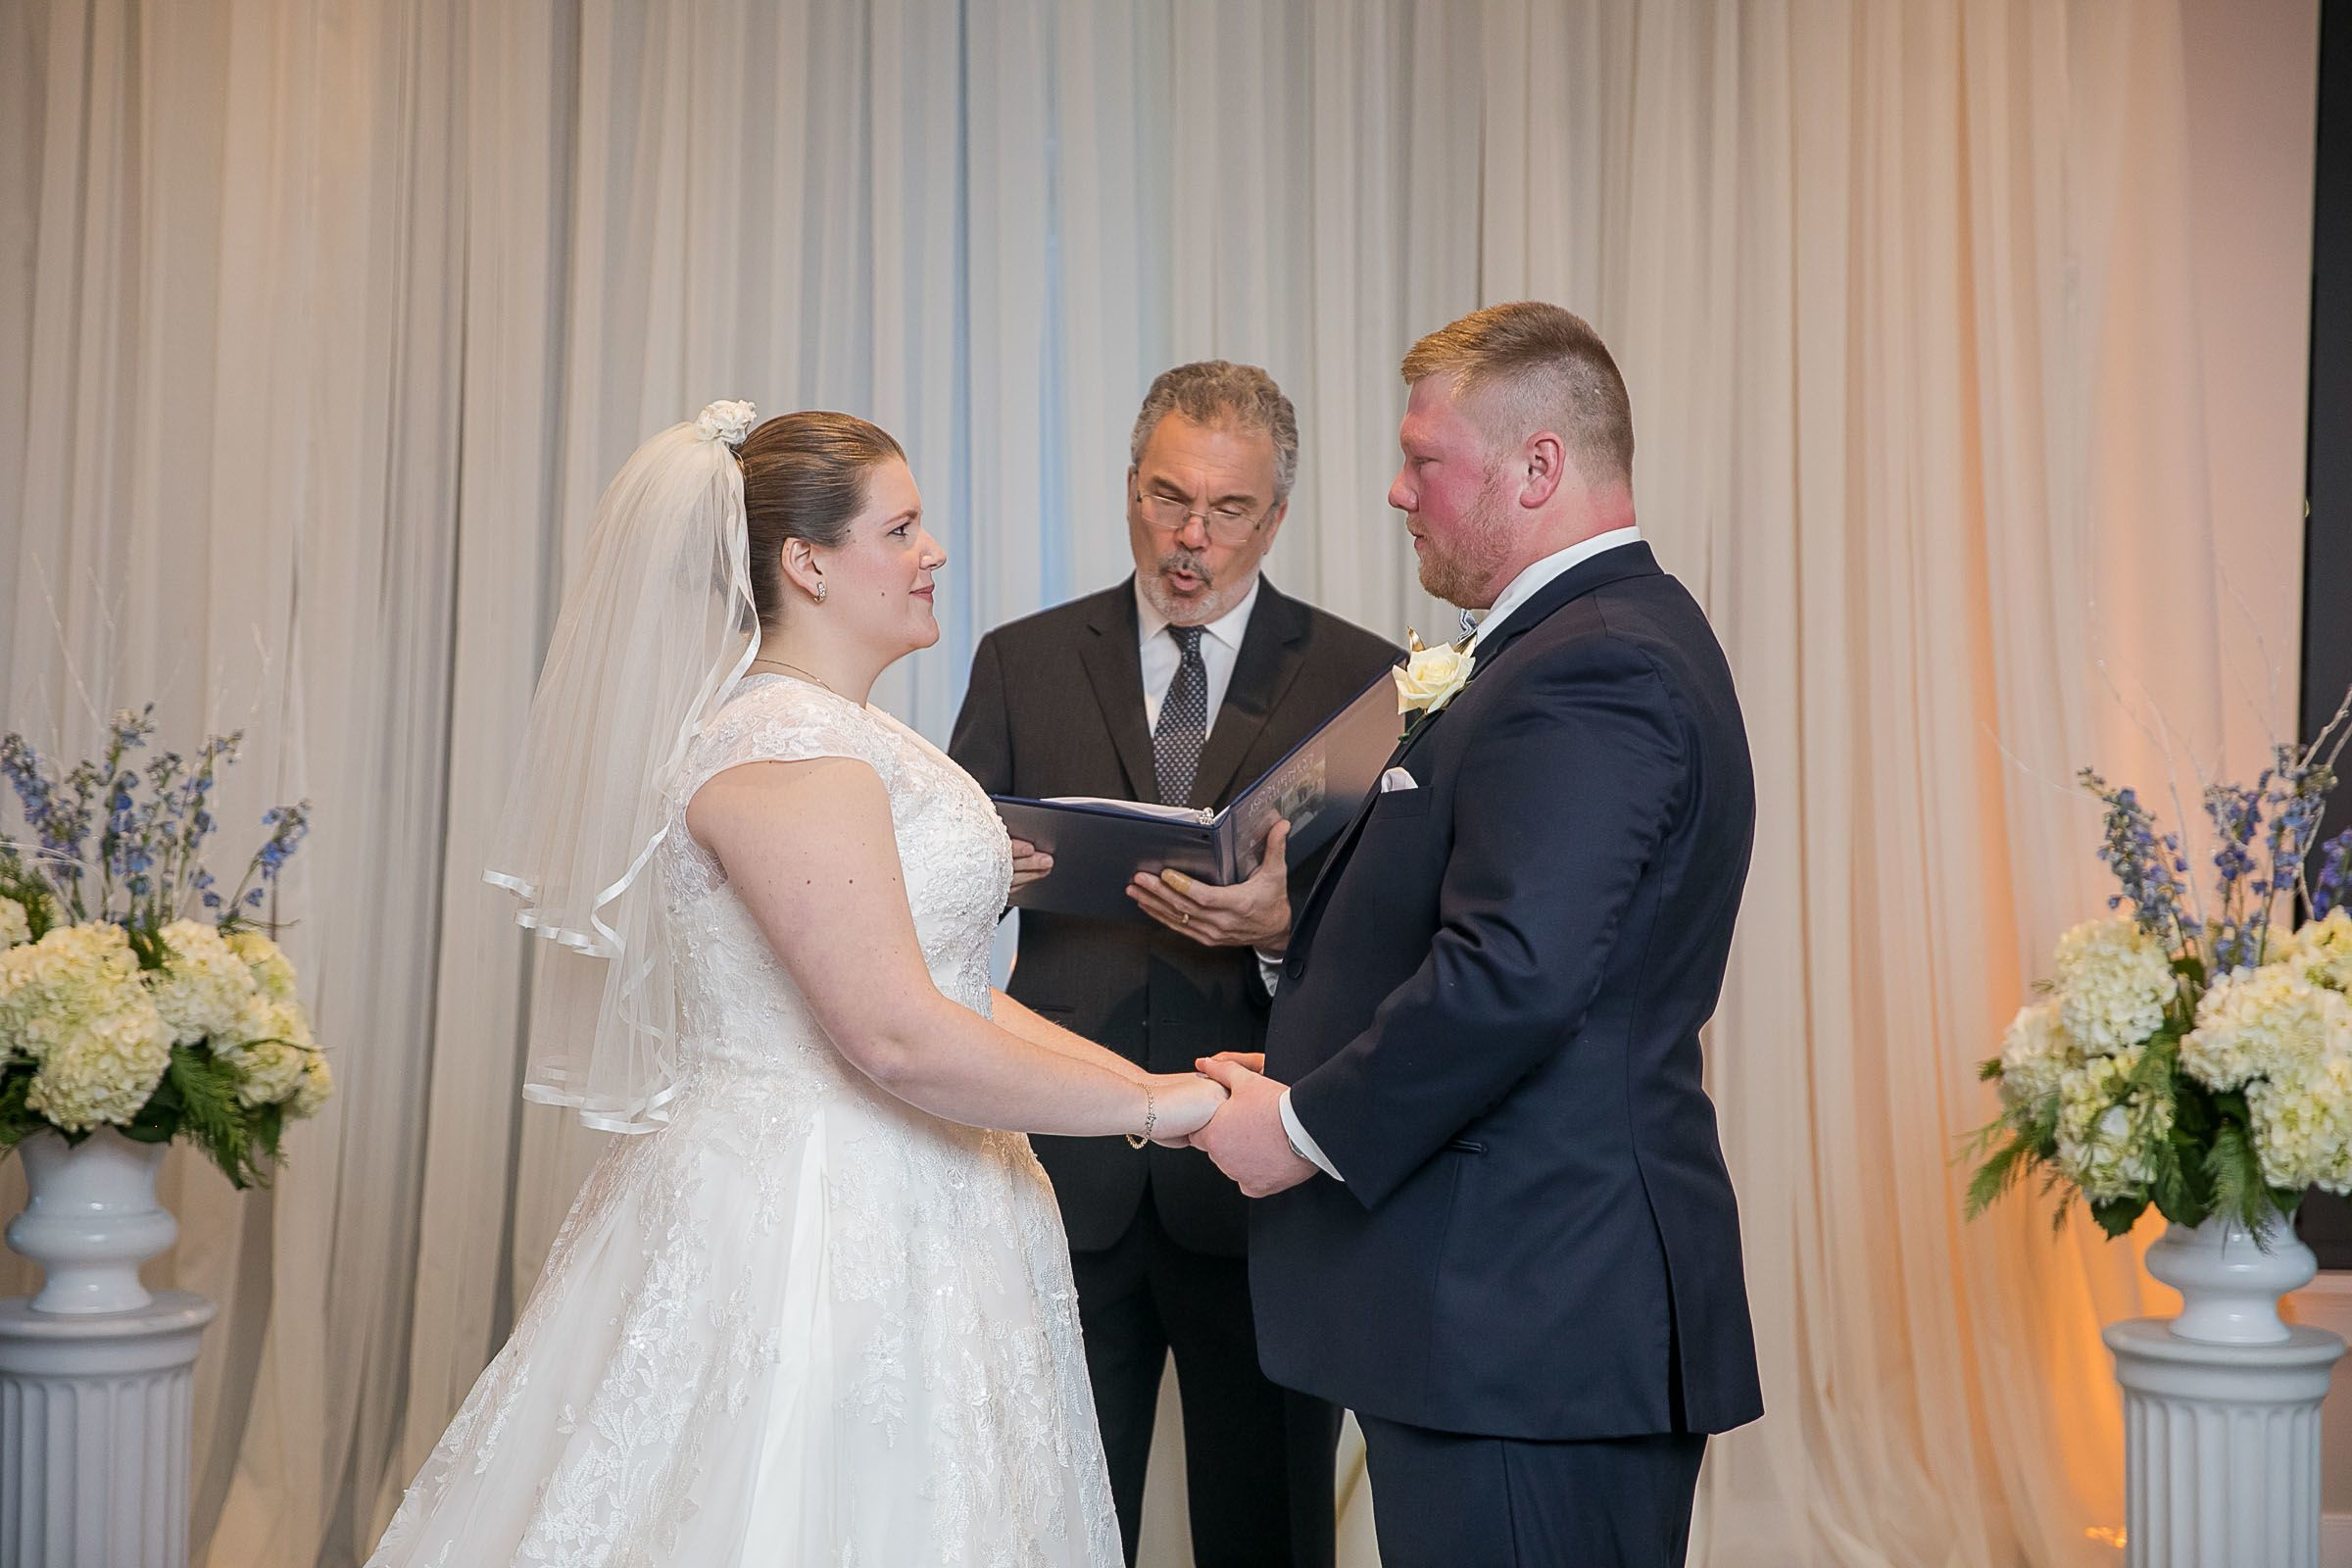 Camille Griswold and Dan Cooler, with officiant Kevin Barr.